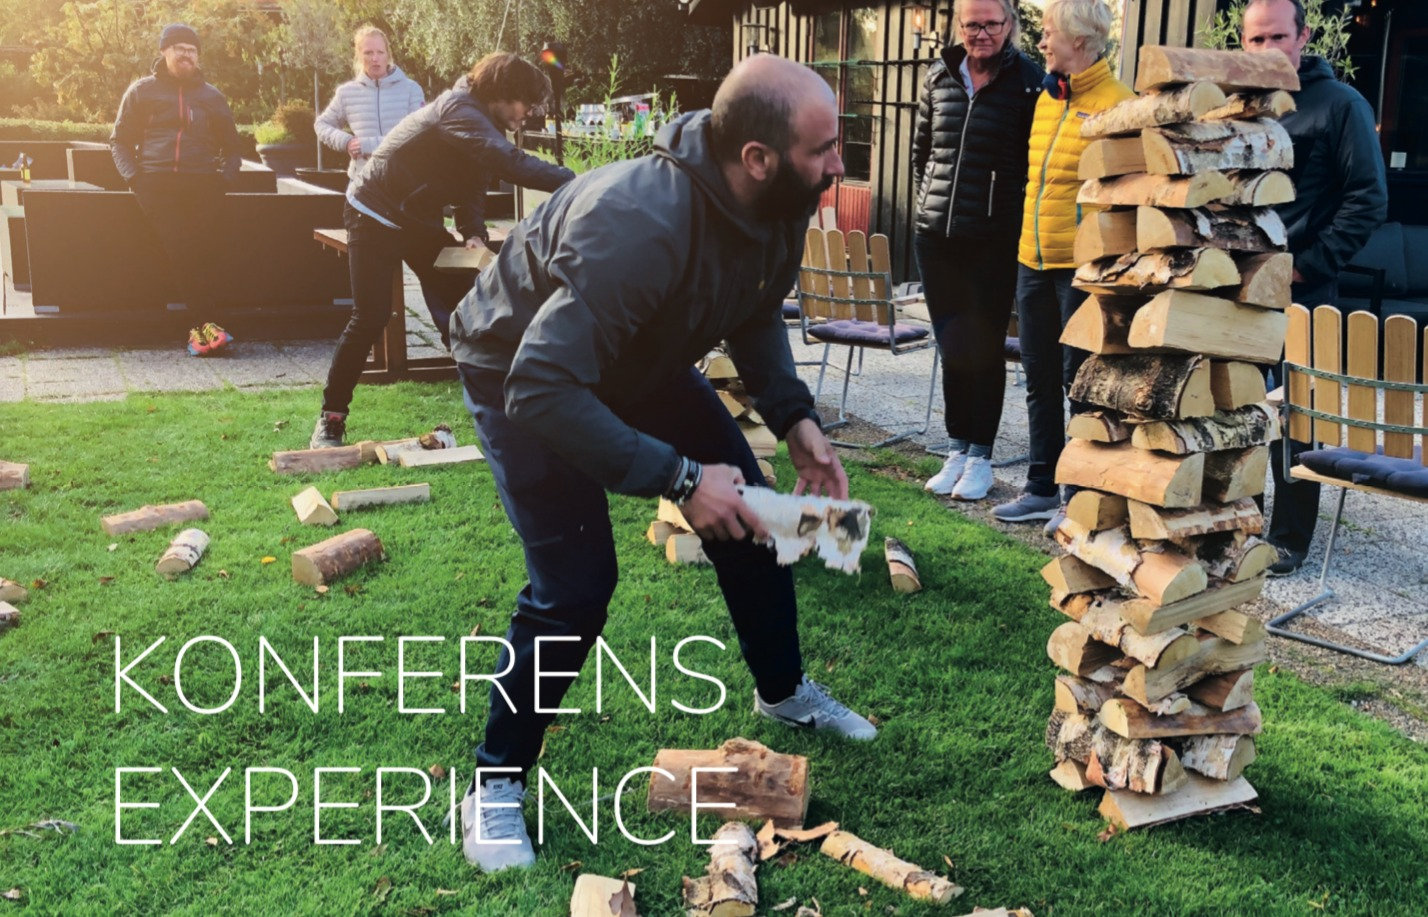 KONFERENS EXPERIENCE